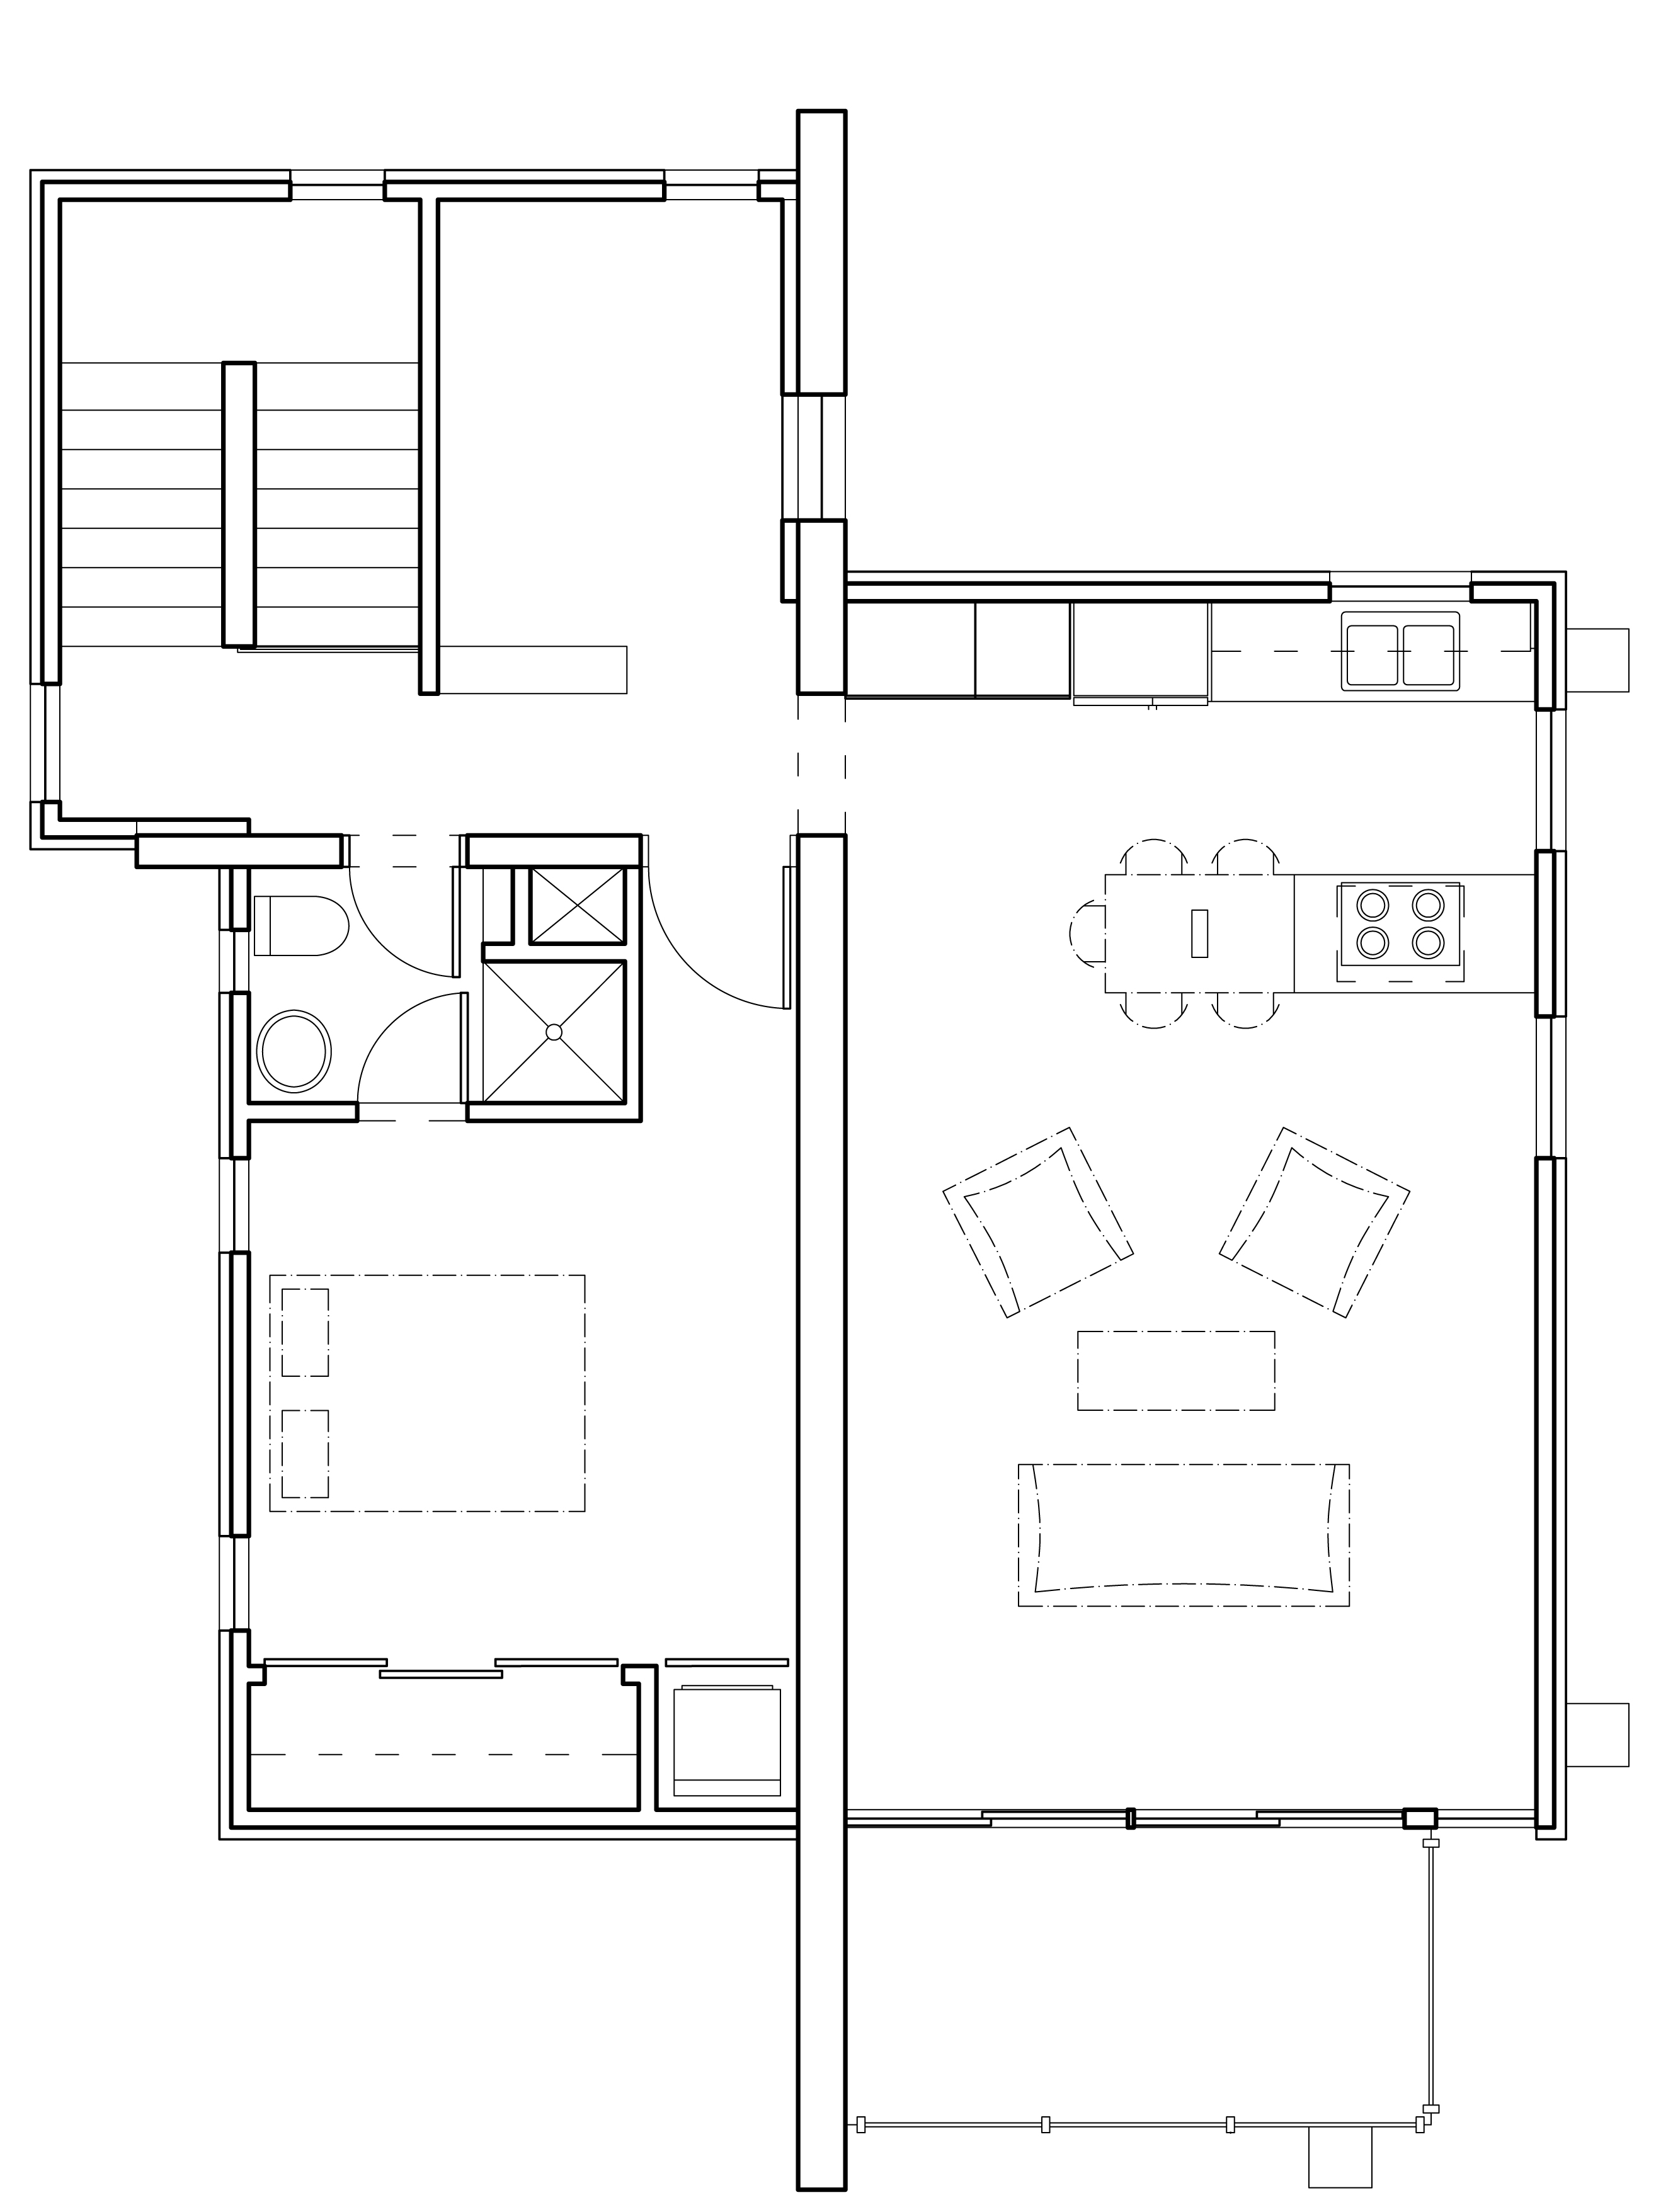 House Designs And Floor Plans Modern House Plans Contemporary Home Designs Floor Plan 05